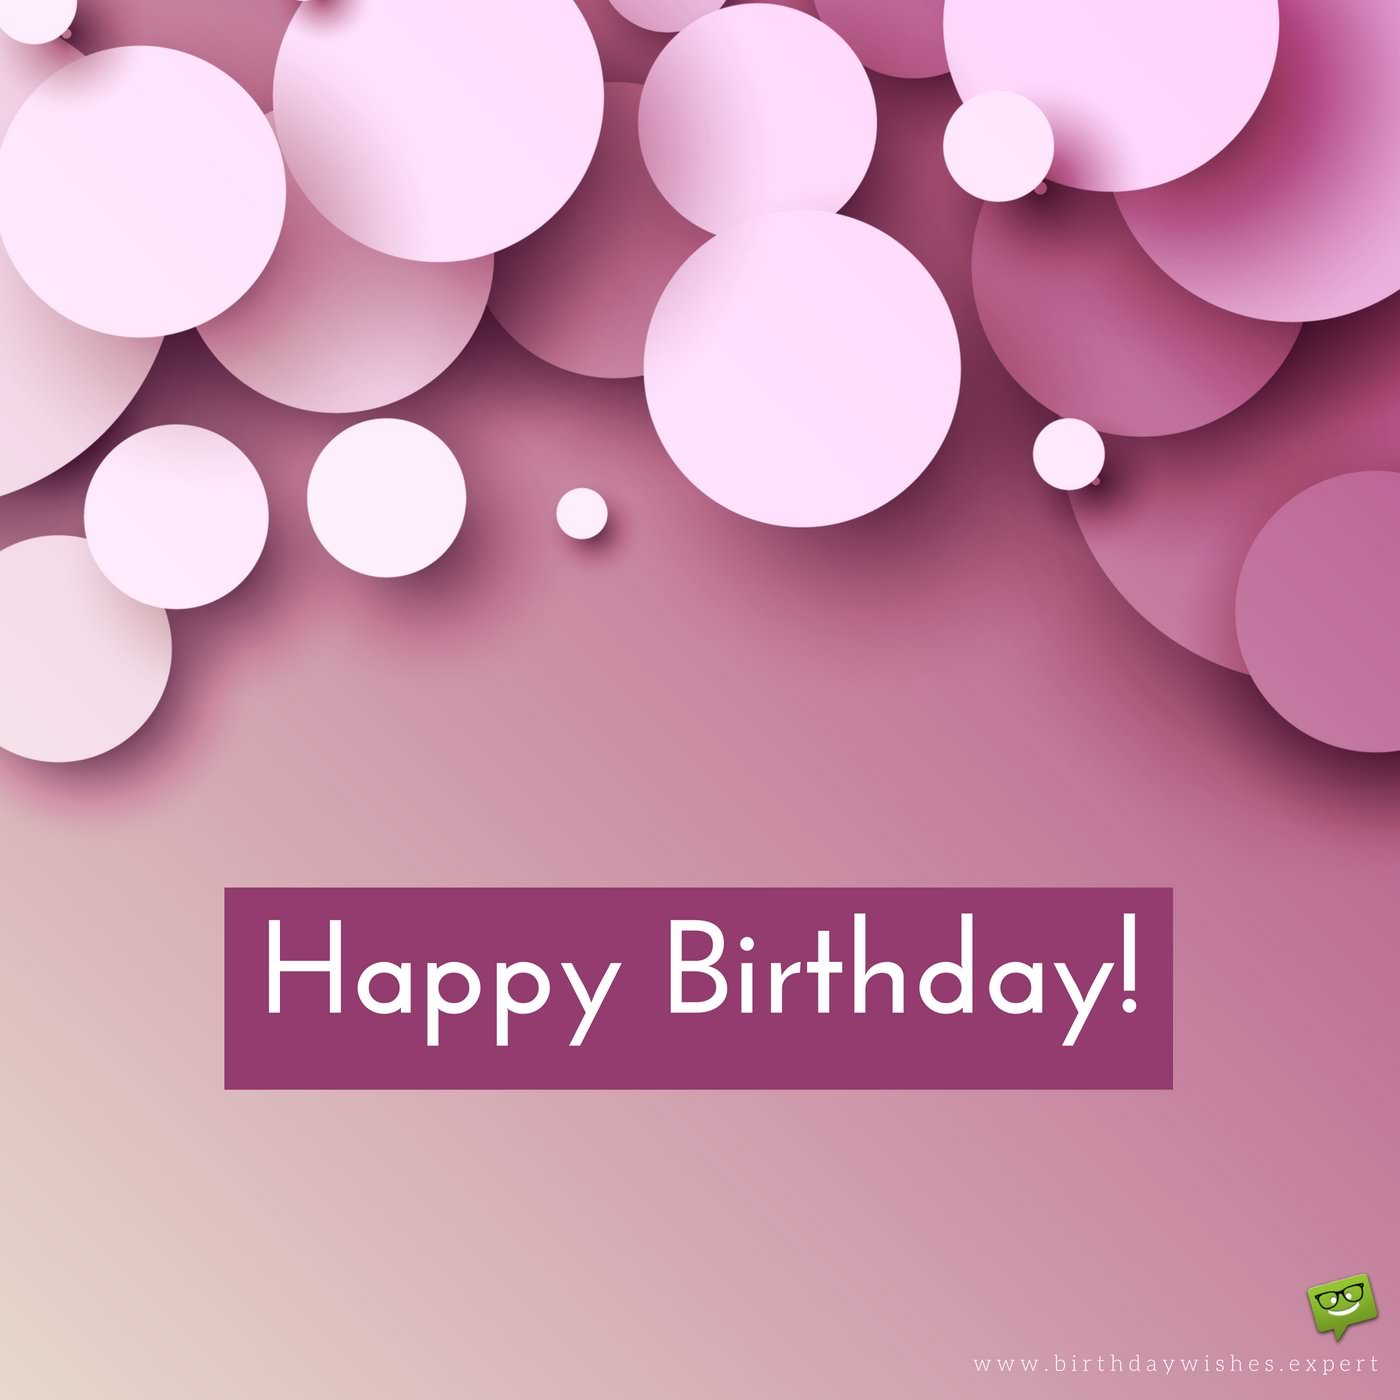 birthday wishes and images ; Birthday-wish-for-a-friend-on-modern-pink-background